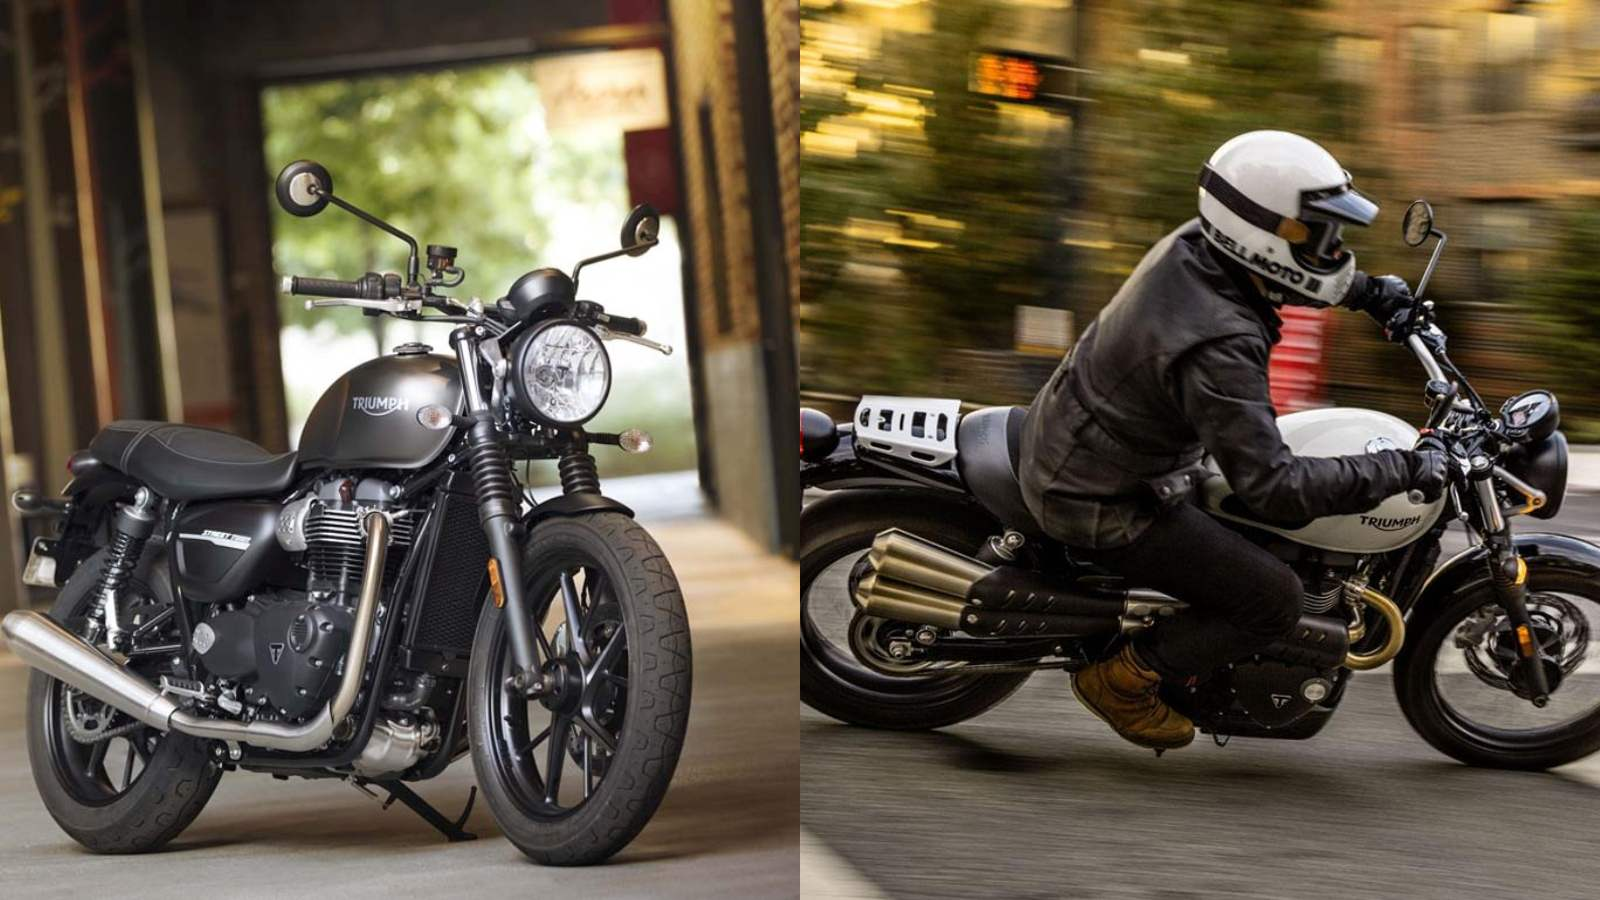 Triumph Recalls Some Of Its Models Due To A Wiring Issue Motoroids